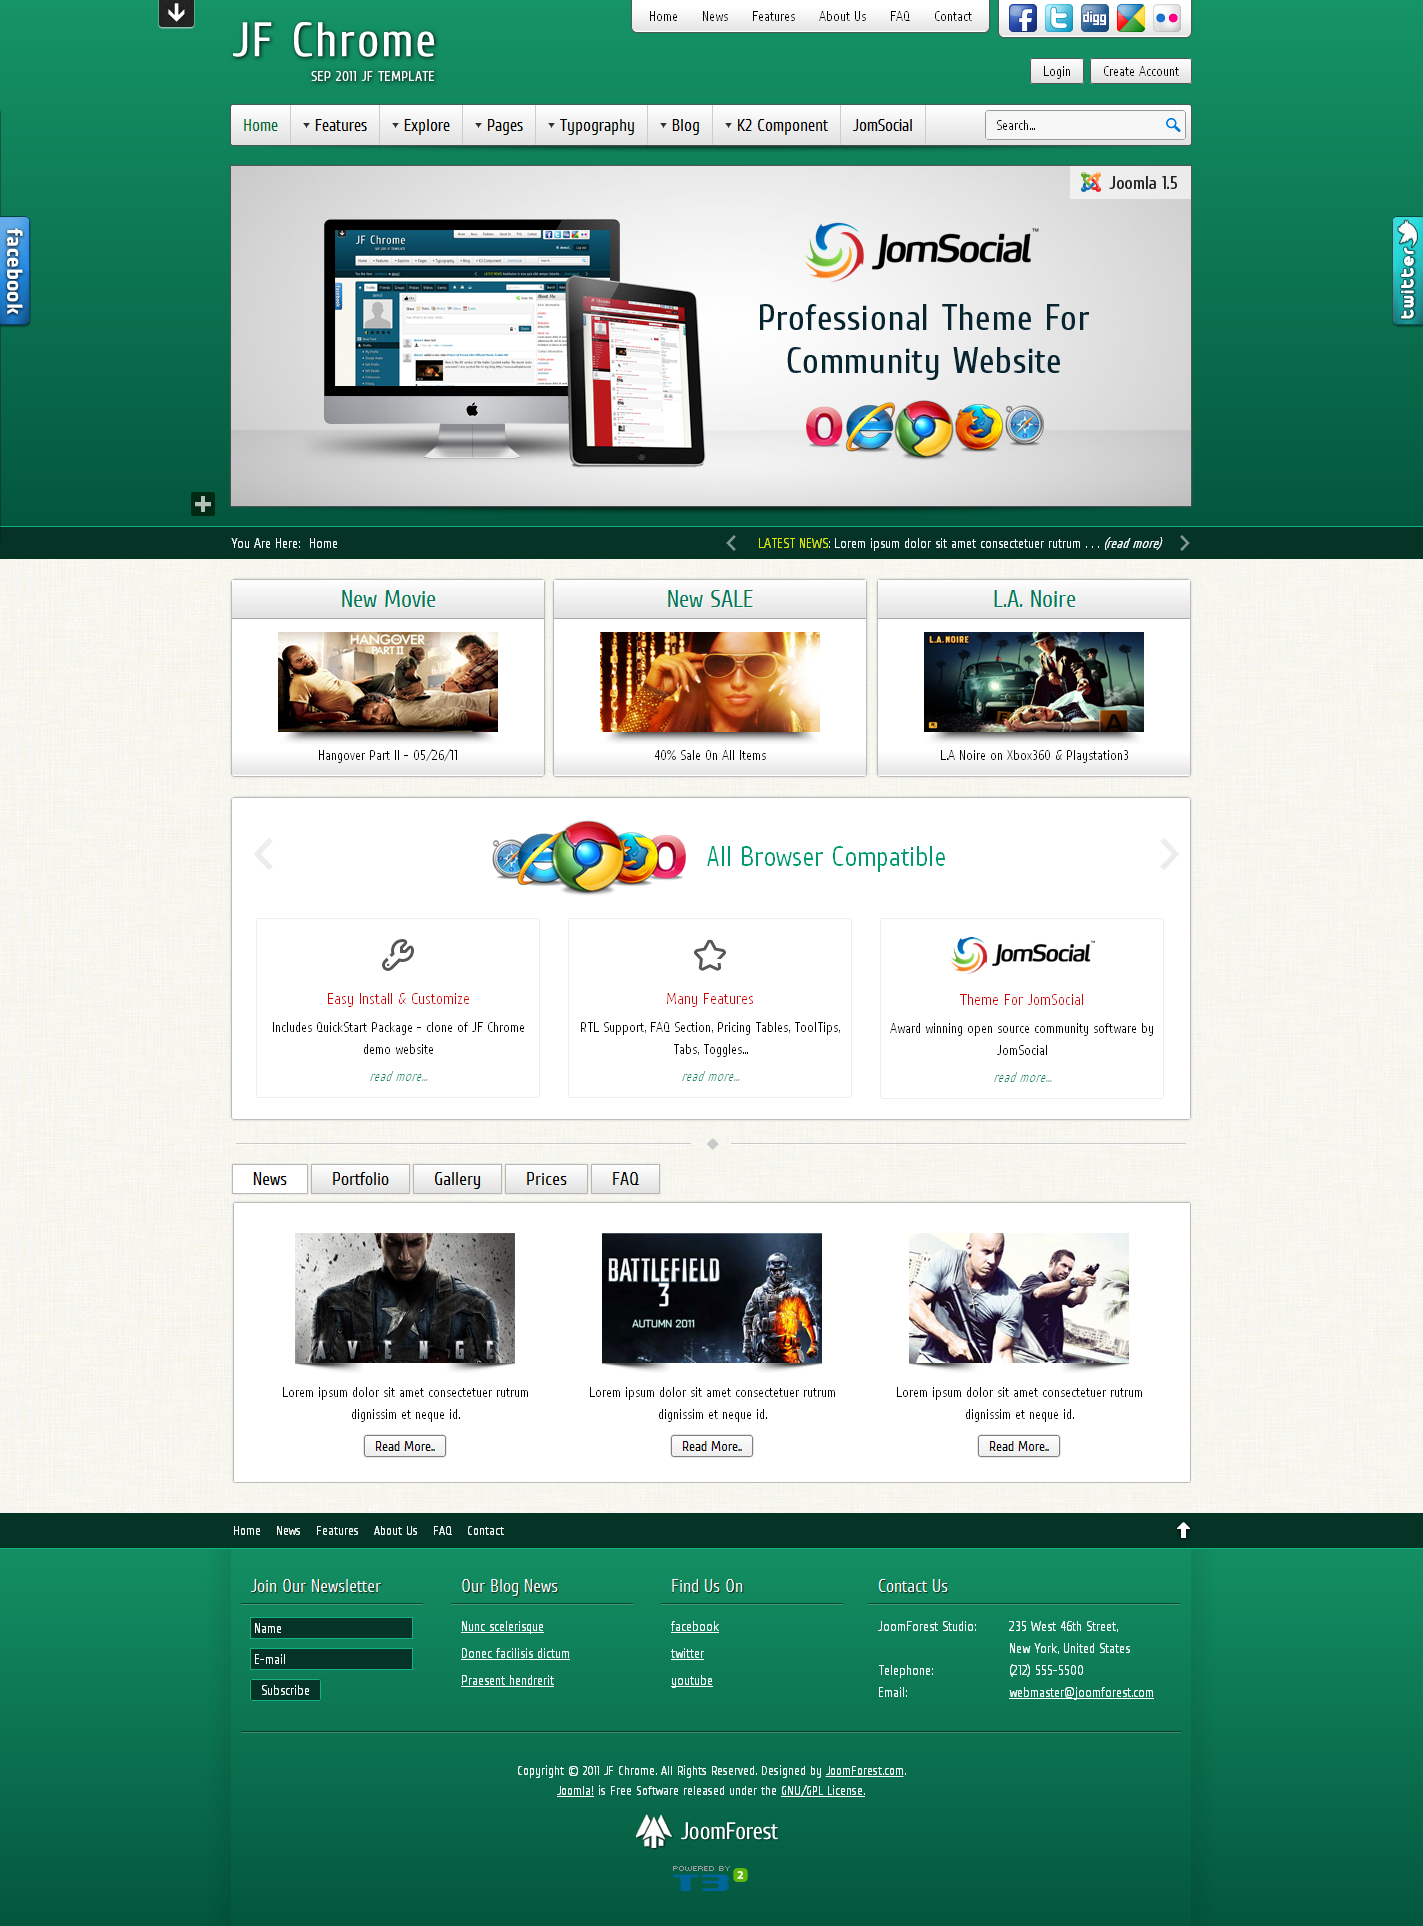 JF Chrome - JomSocial Ready Joomla Template - Green Theme